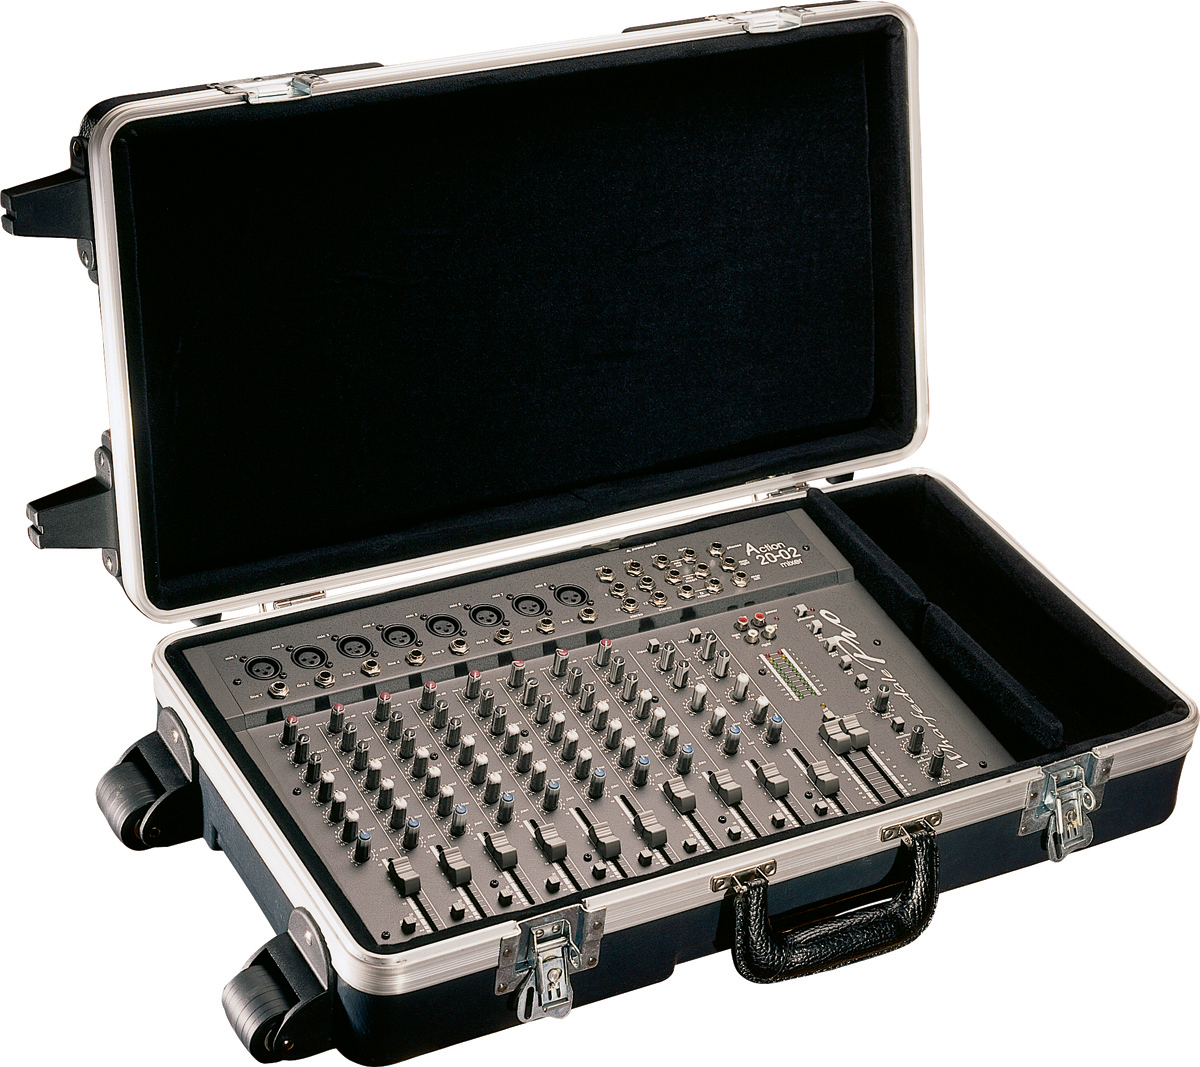 Gator G-MIX 12X24 Molded PE Mixer or Equipment Case, 12x24x4.25in; Wheels